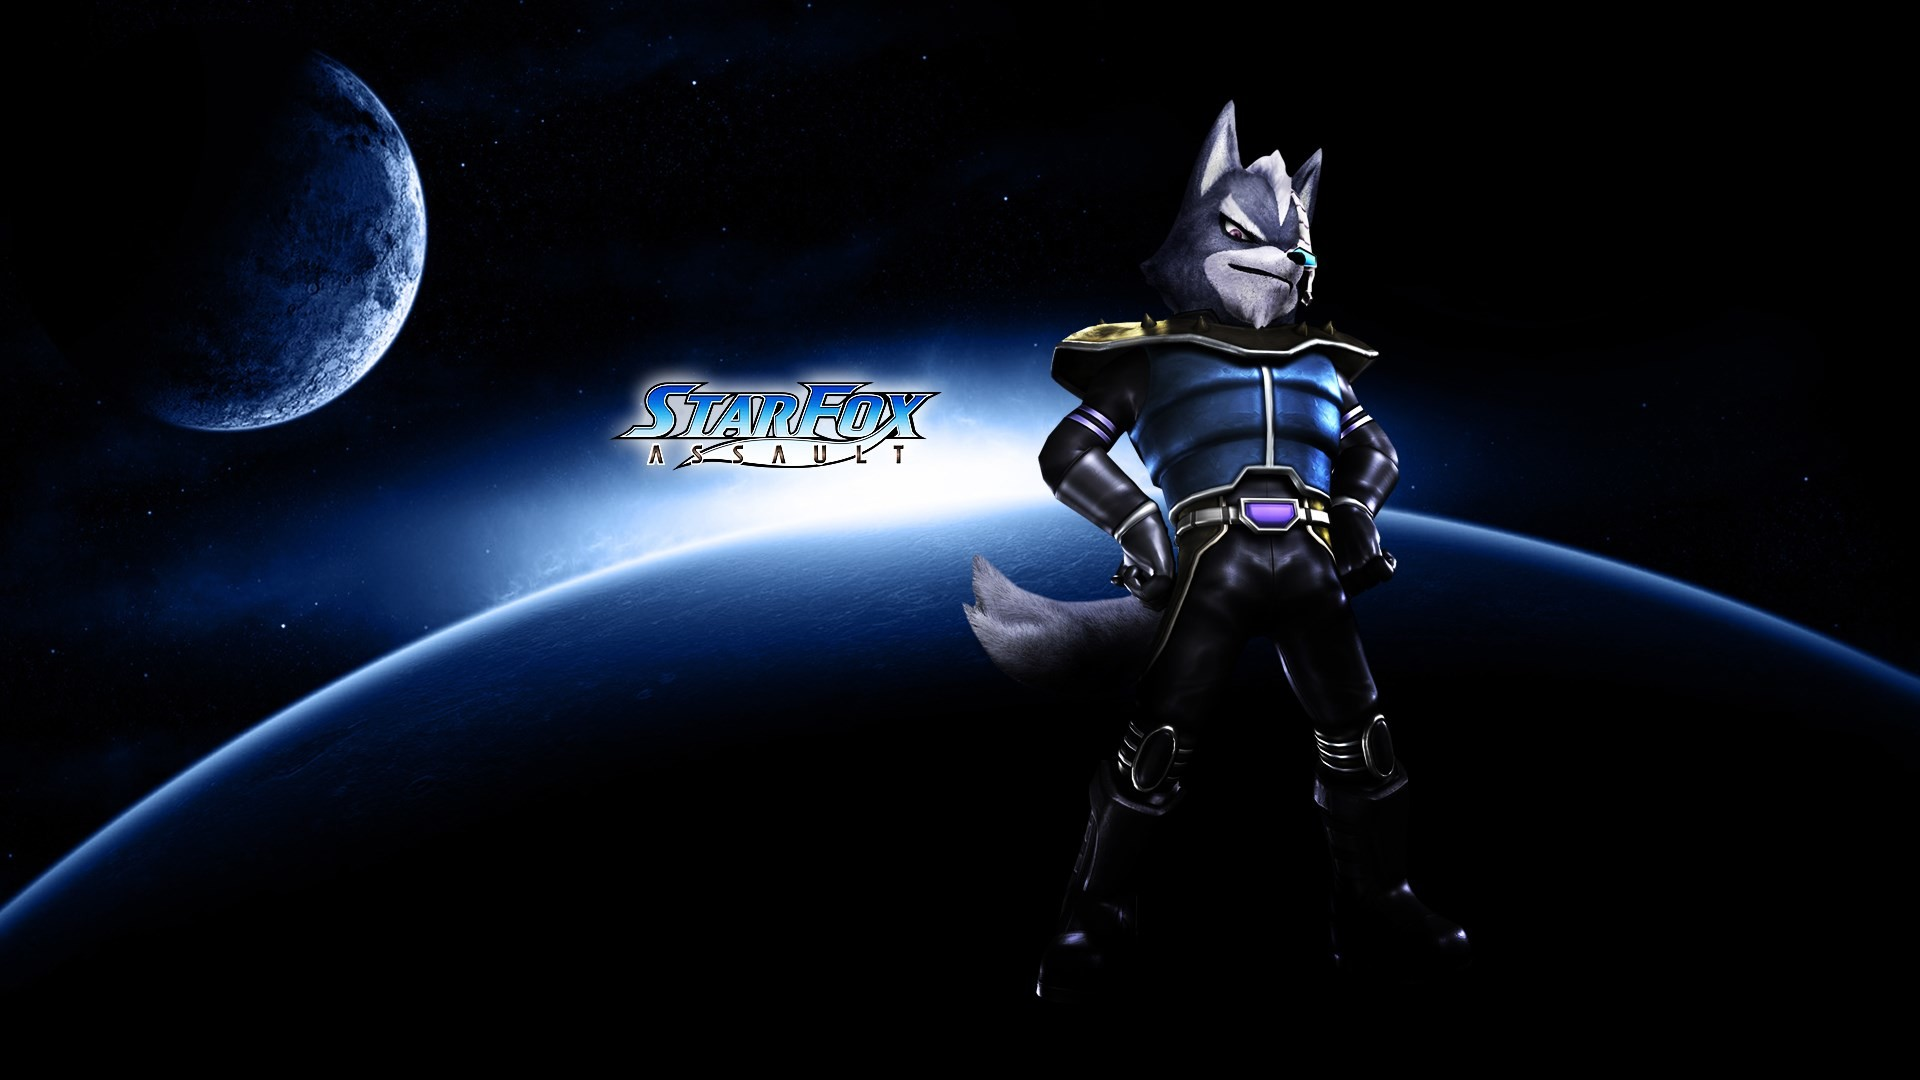 1920x1080 #1963731, star fox assault category - wallpaper desktop star fox assault